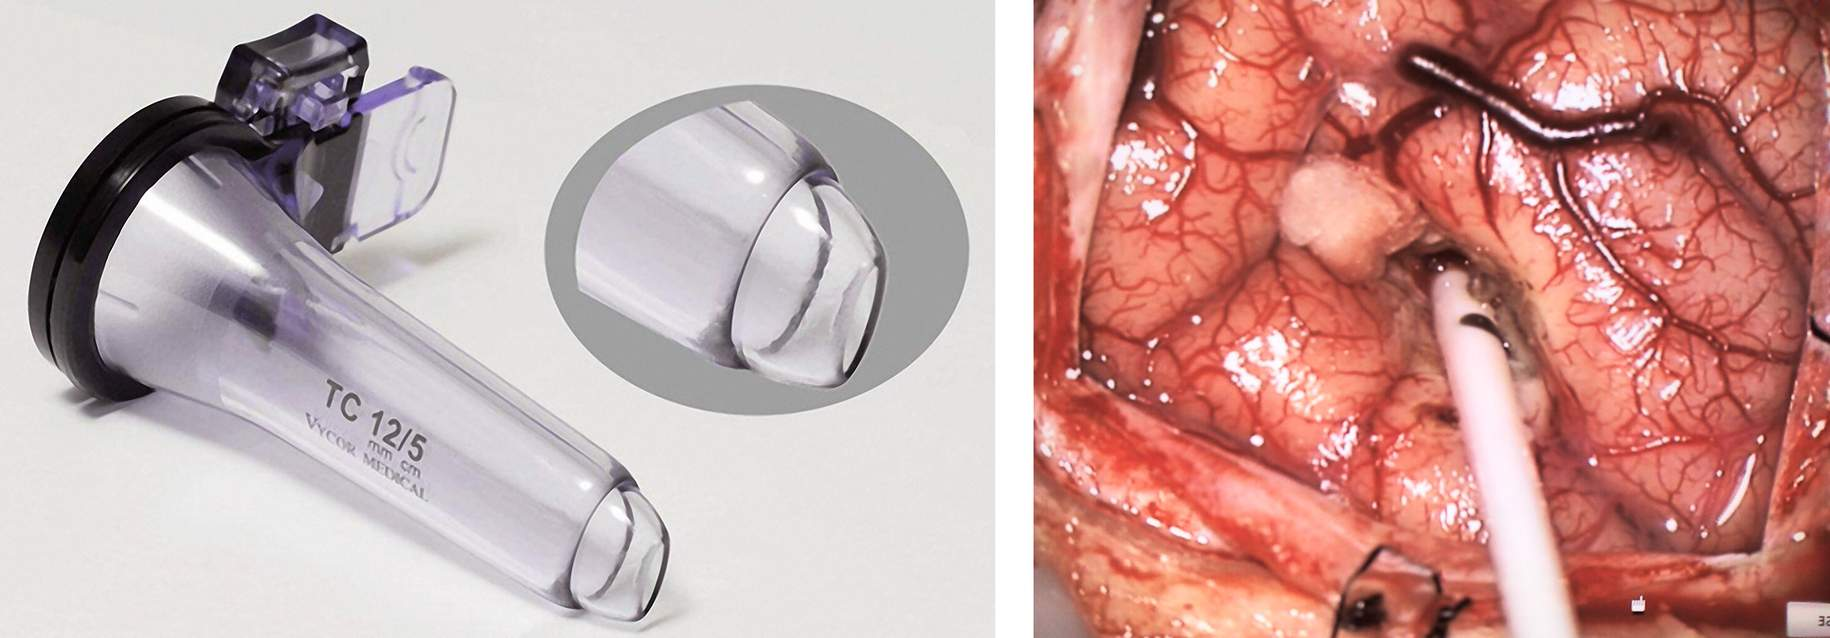 "Figure 1: The tubular retractor system is shown (left image). A small right frontal craniotomy just anterior to the coronal suture and at Kocher's point is completed using an ""L""-shaped scalp incision. The more dilated ventricle (in this case, the right ventricle) is selected for access. Frameless stereotactic navigation is used to place a standard ventricular catheter into the frontal horn of the lateral ventricle aimed at the cyst or foramen of Monro (right image)."